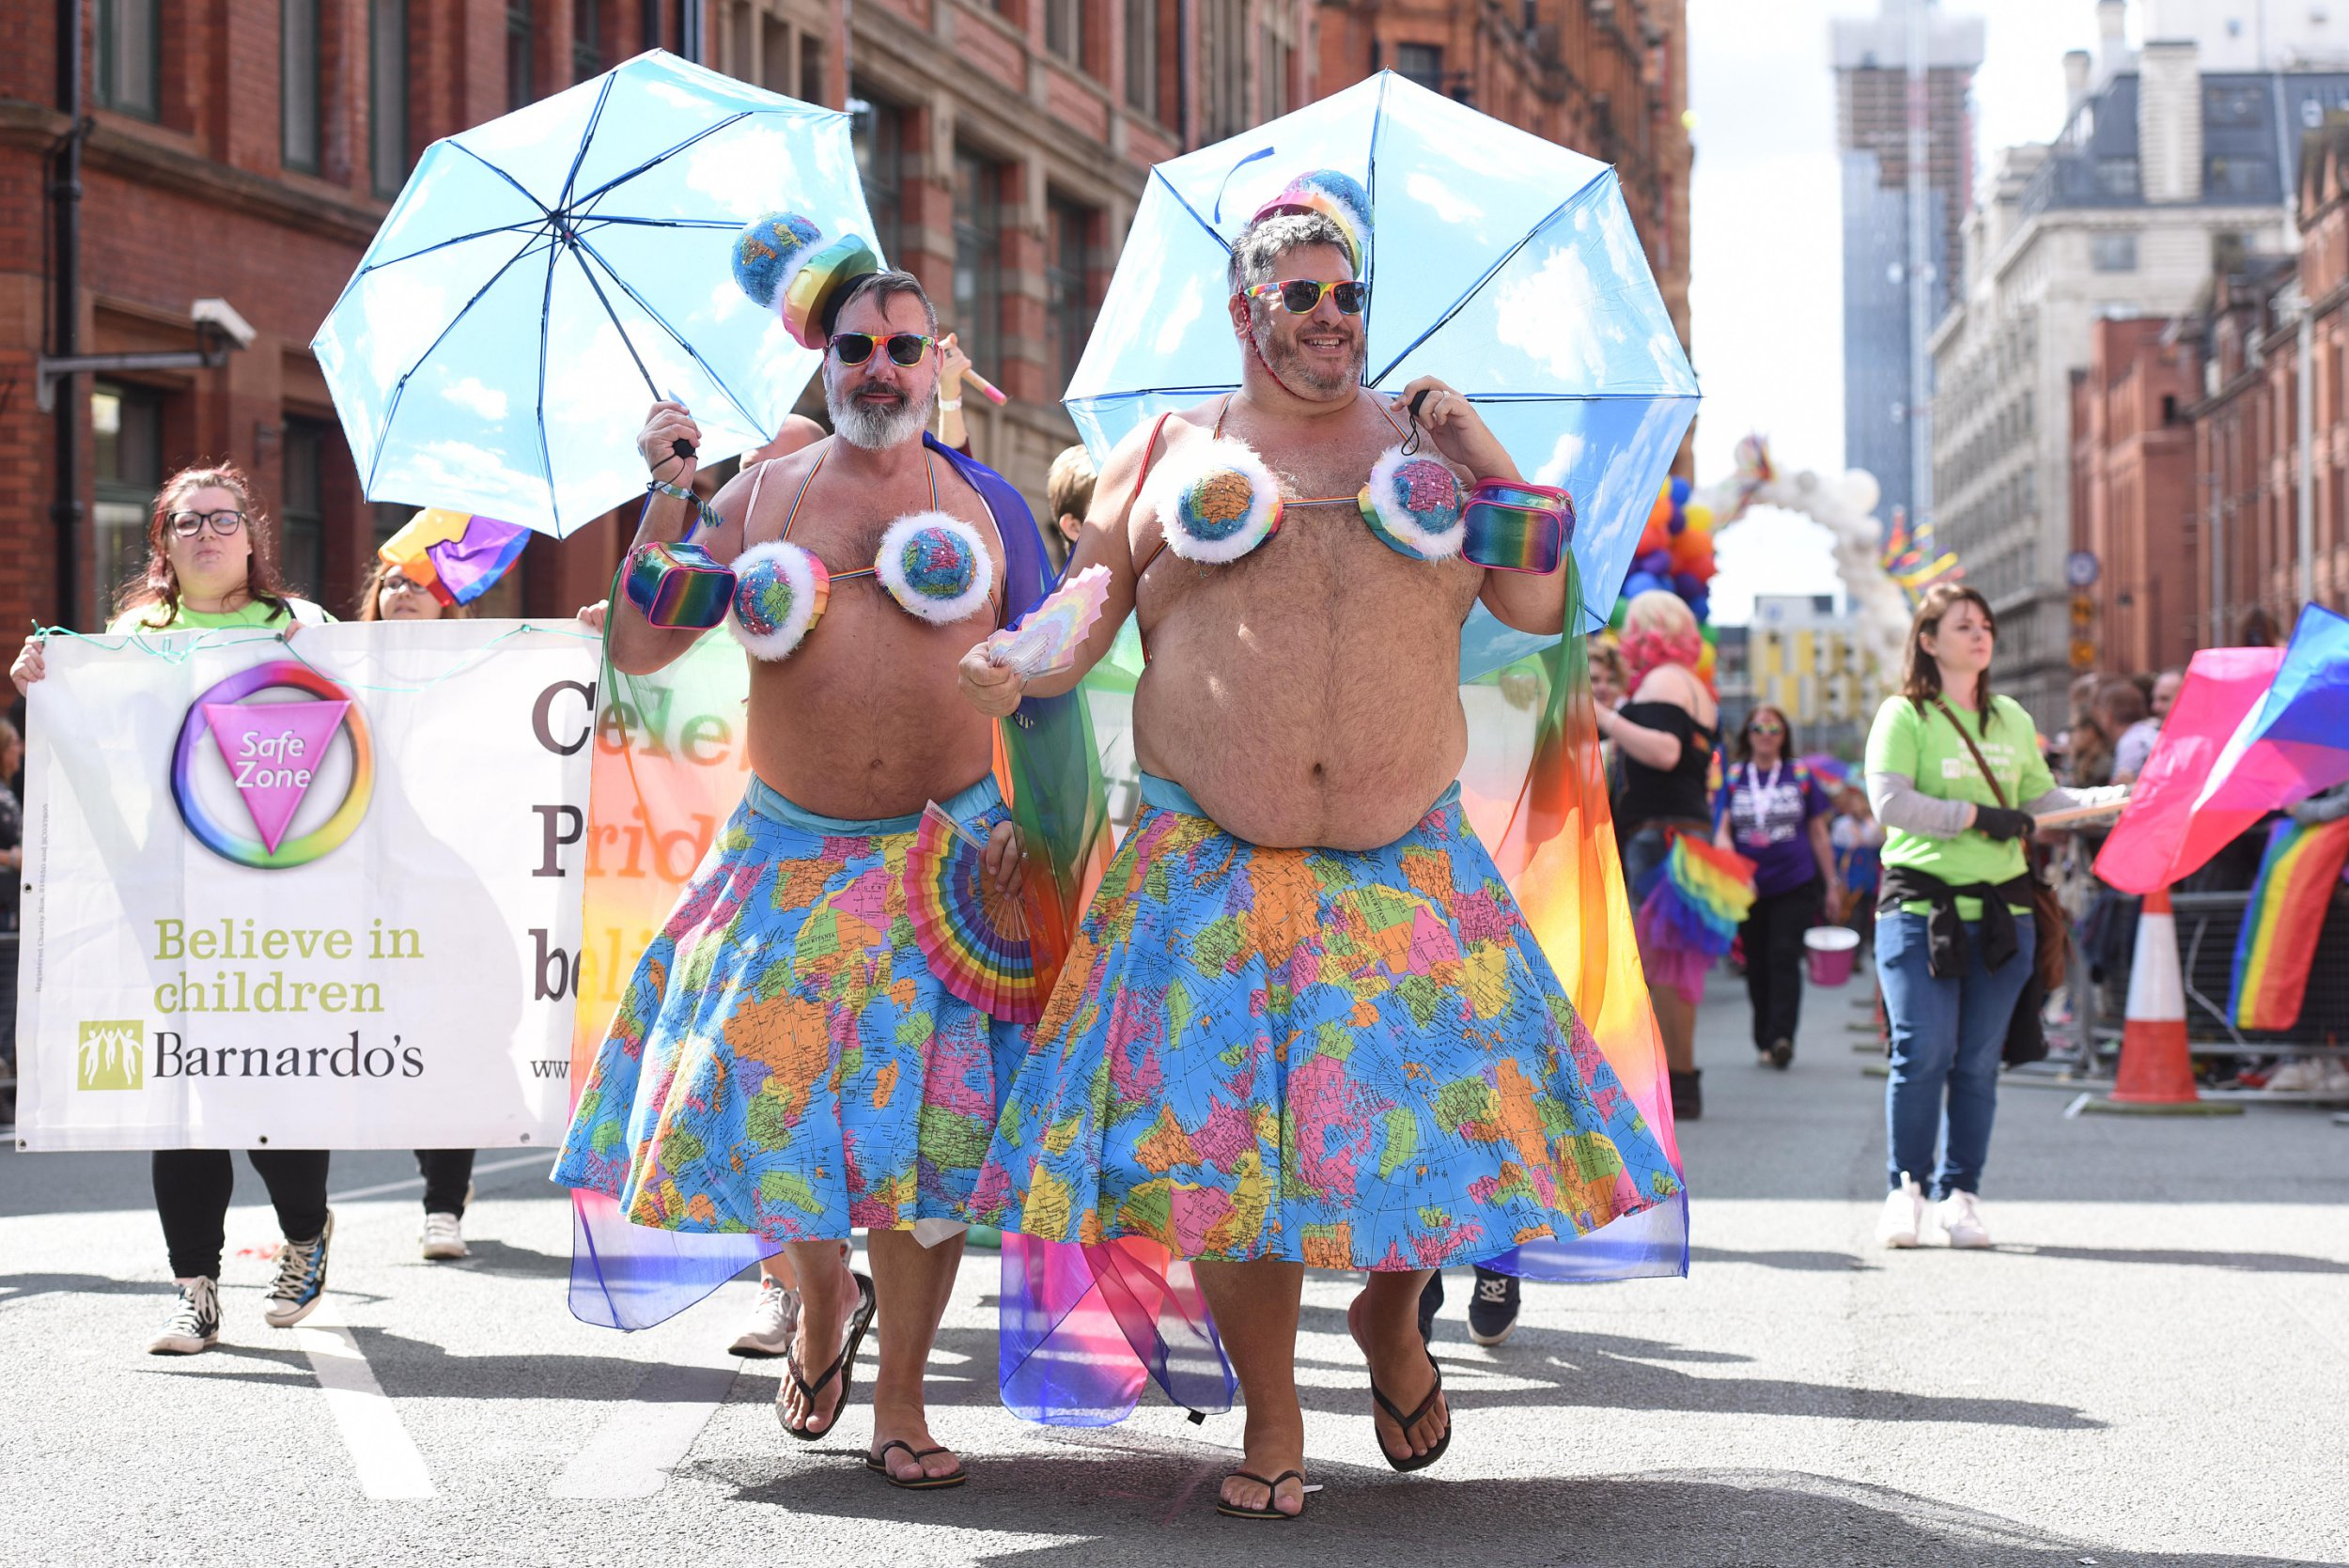 Men wearing Hawaiian-style dress takes part in Manchester?s huge annual Pride through the city centre today (Saturday 25 August 2018). The procession of floats and troupes marks the culmination of the city?s Pride festival, one of the biggest lesbian, gay, bisexual and transgender events in the UK. This year?s parade theme, The Circus of Acceptance, brought stilt walkers, unicyclists, jugglers, trapeze artists, and clowns to the city's streets.